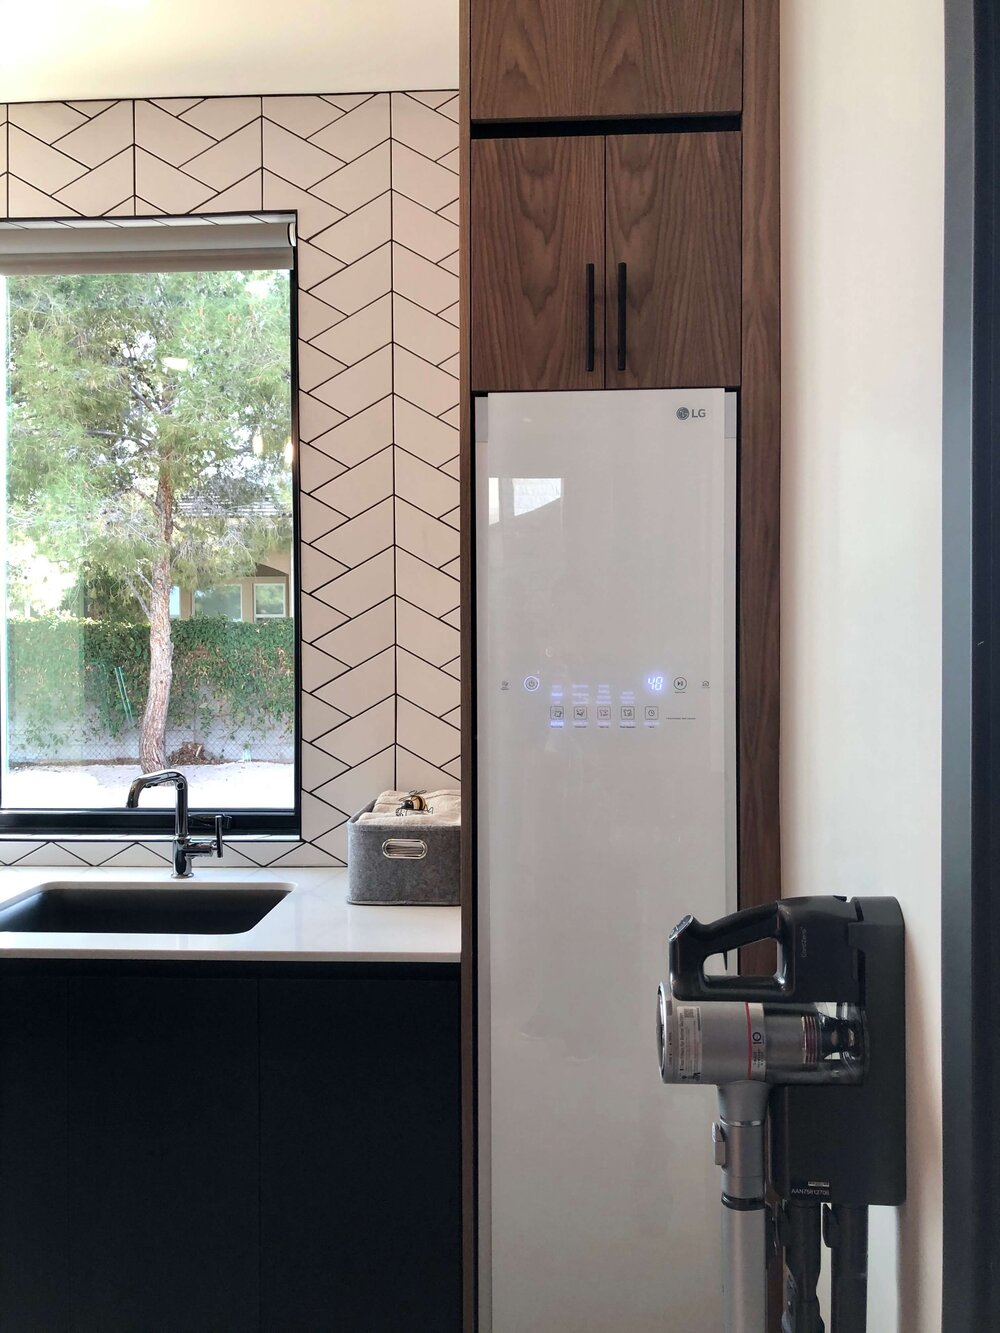 The LG Styler built in the laundry room of The New American Remodel. TNAR | #remodeling #remodel #laundryroom